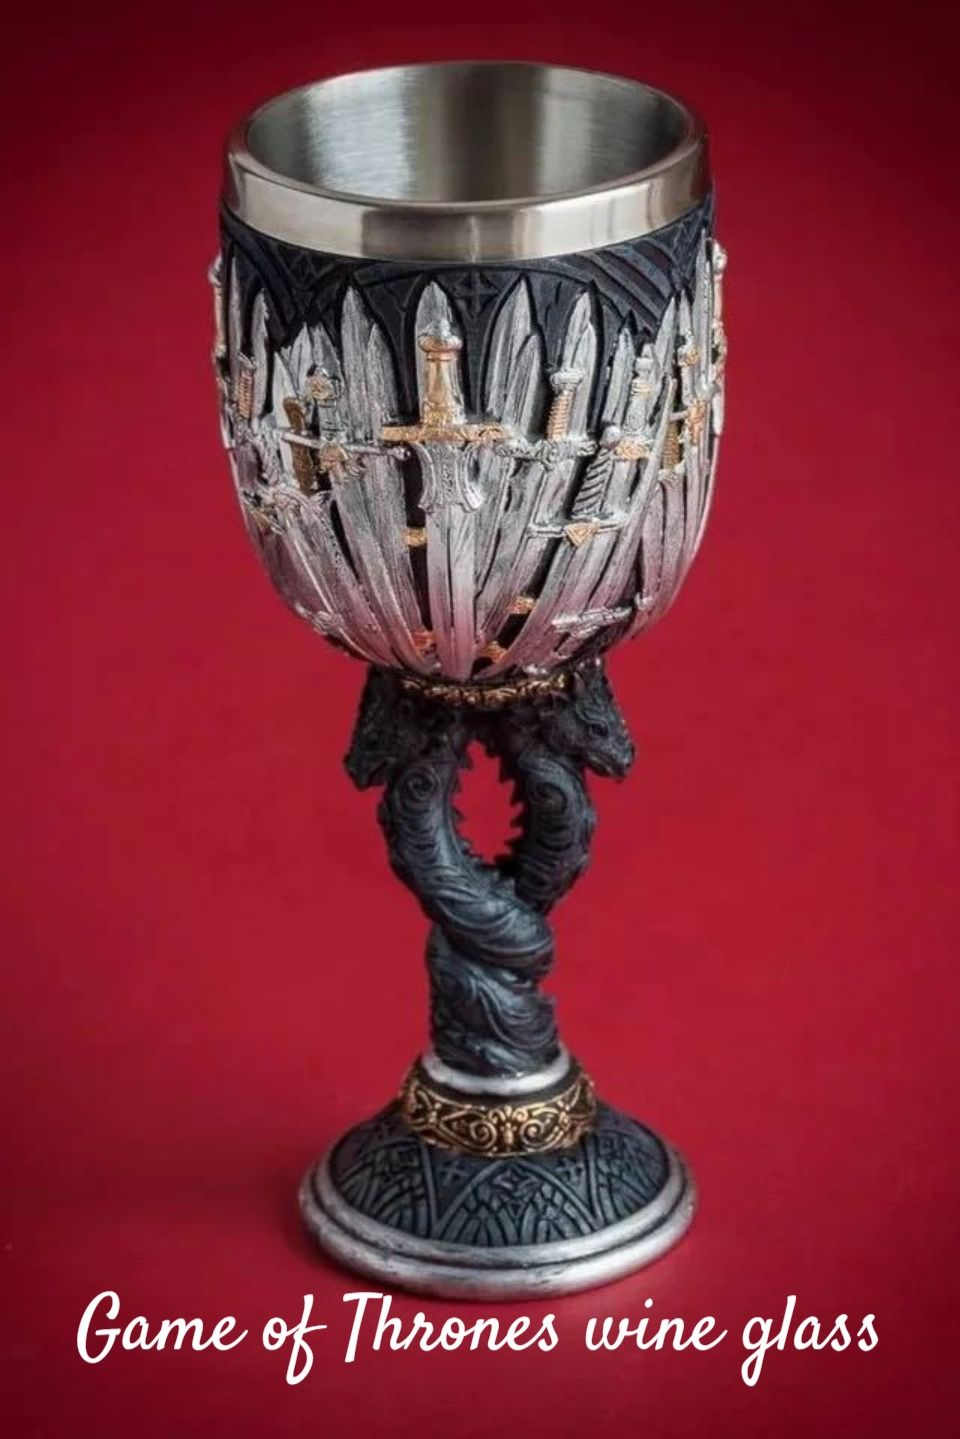 Game Of Thrones Accessories Game Of Thrones Accessories Game Of Thrones Wine Game Of Thrones Theme